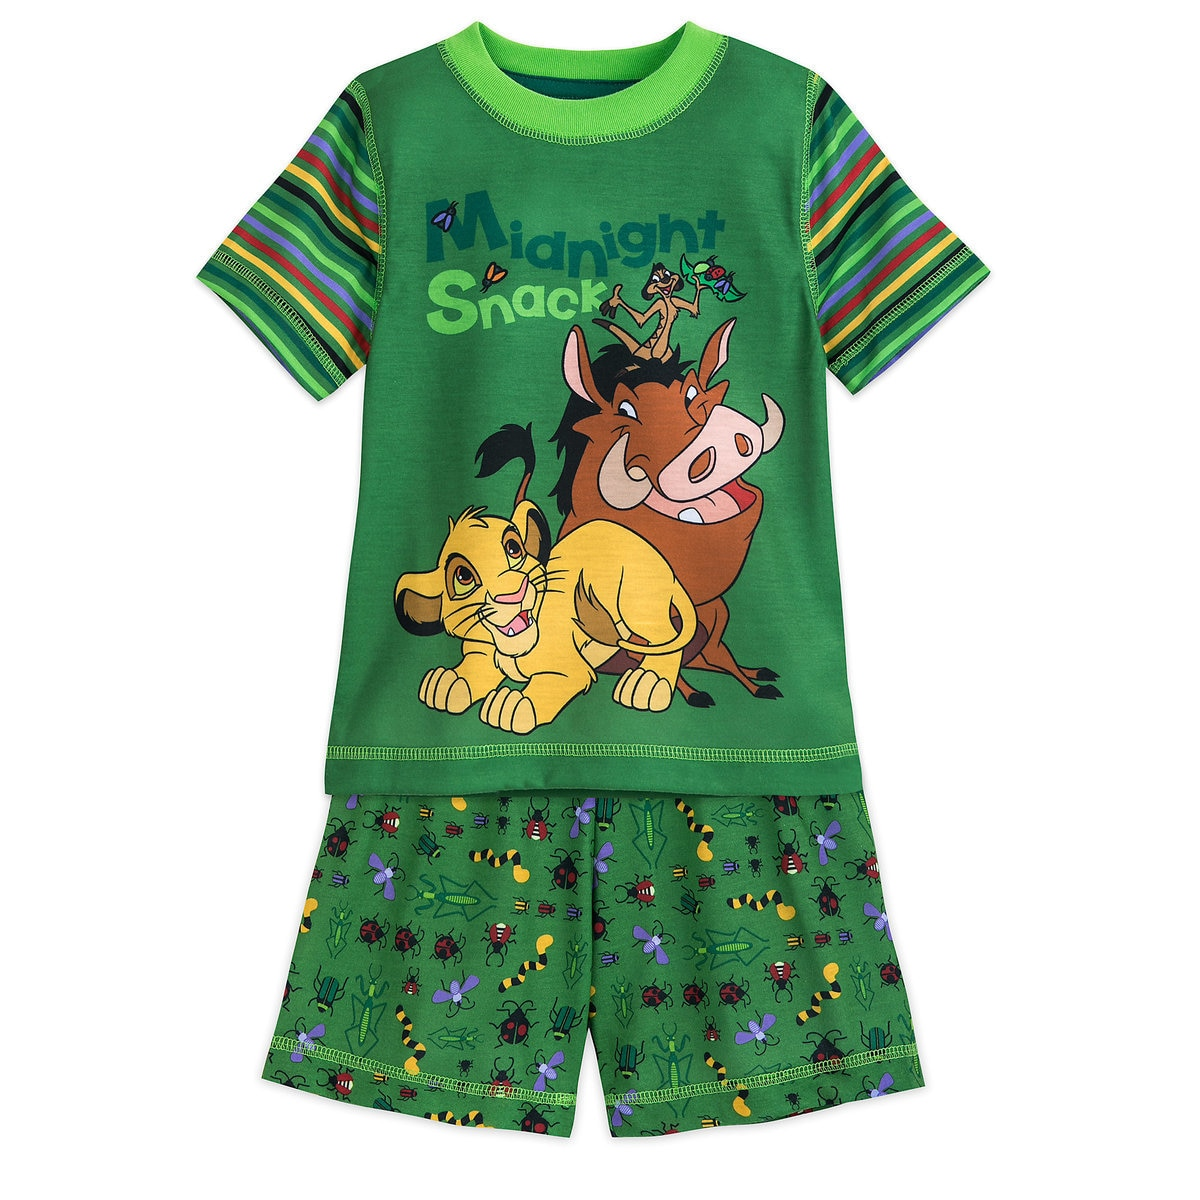 7254ede02 Product Image of The Lion King Short Sleep Set for Boys # 1